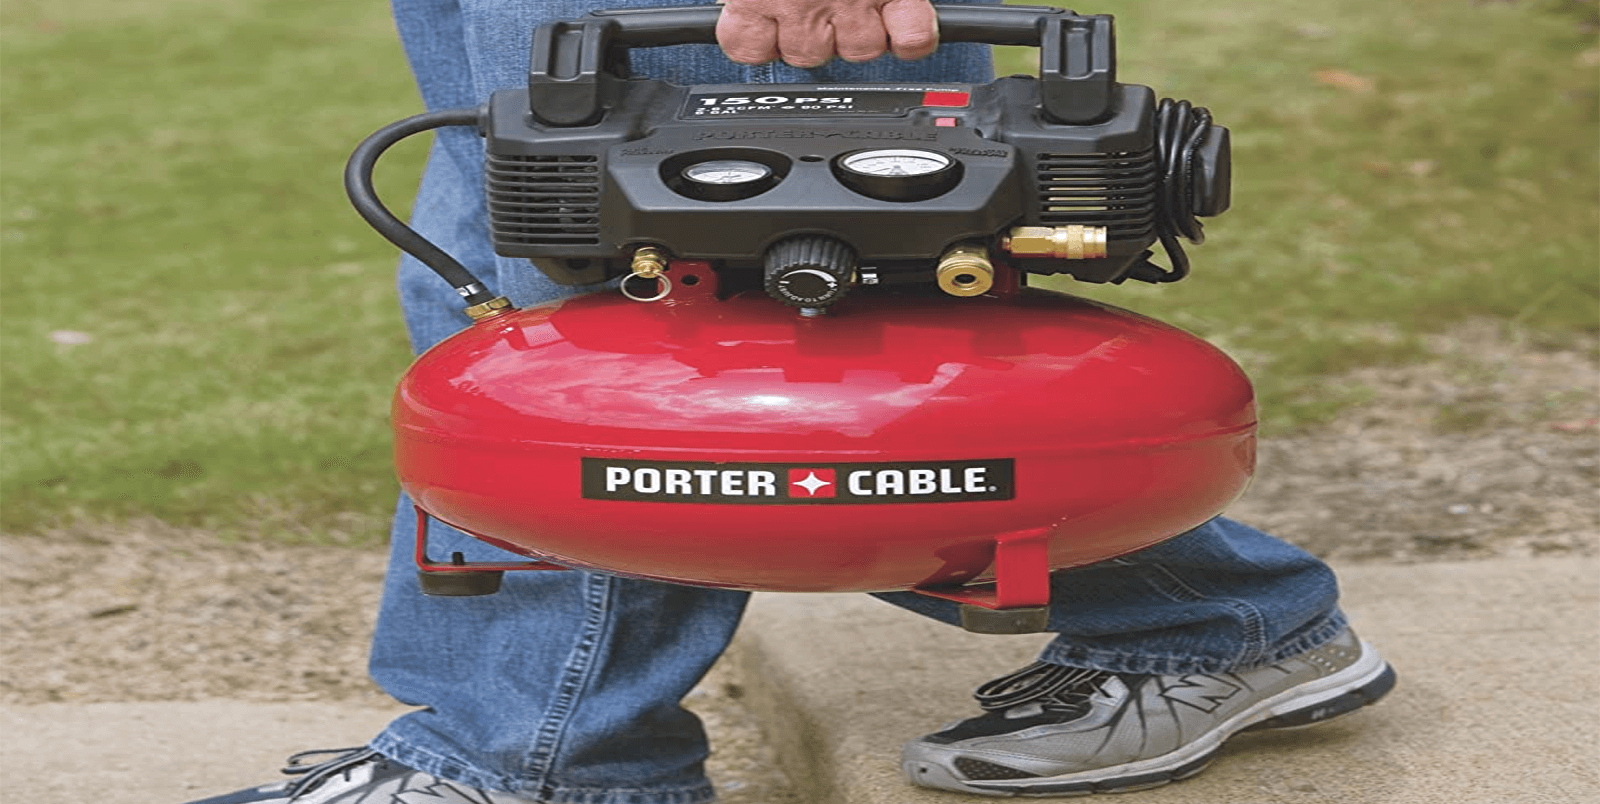 Air compressors are practical and convenient tools with